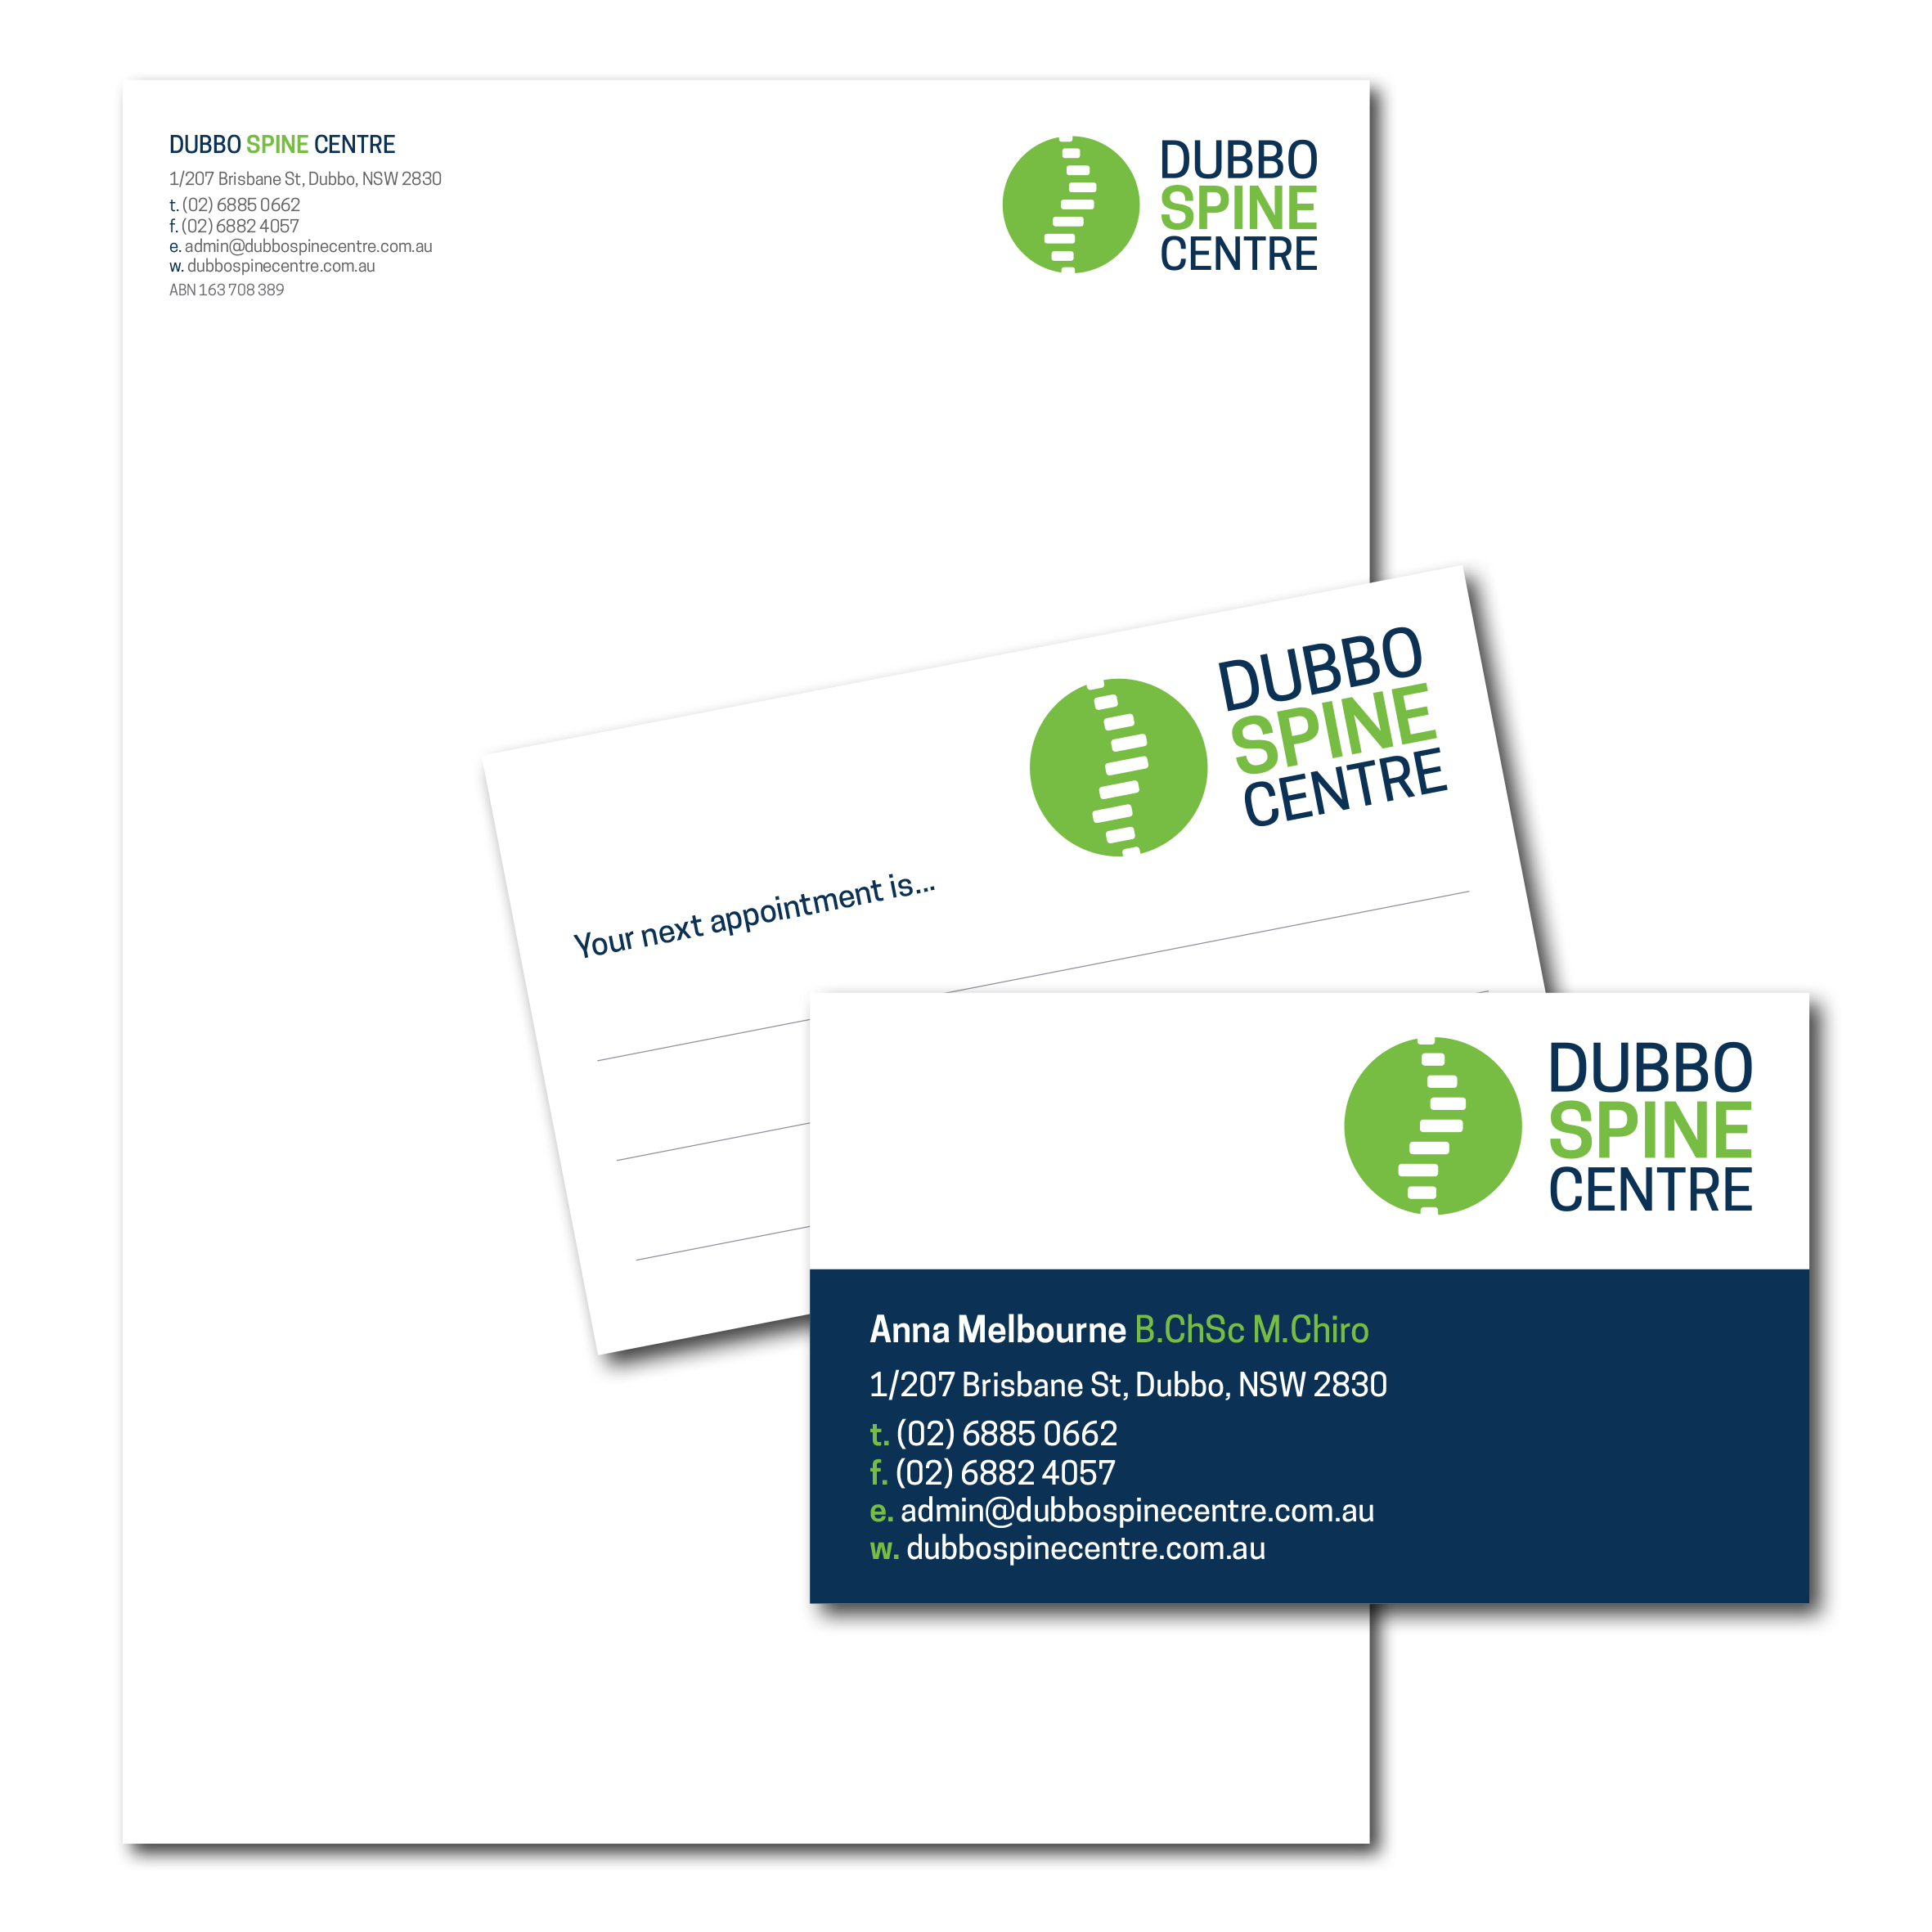 Dubbo Spine Centre logo & stationery